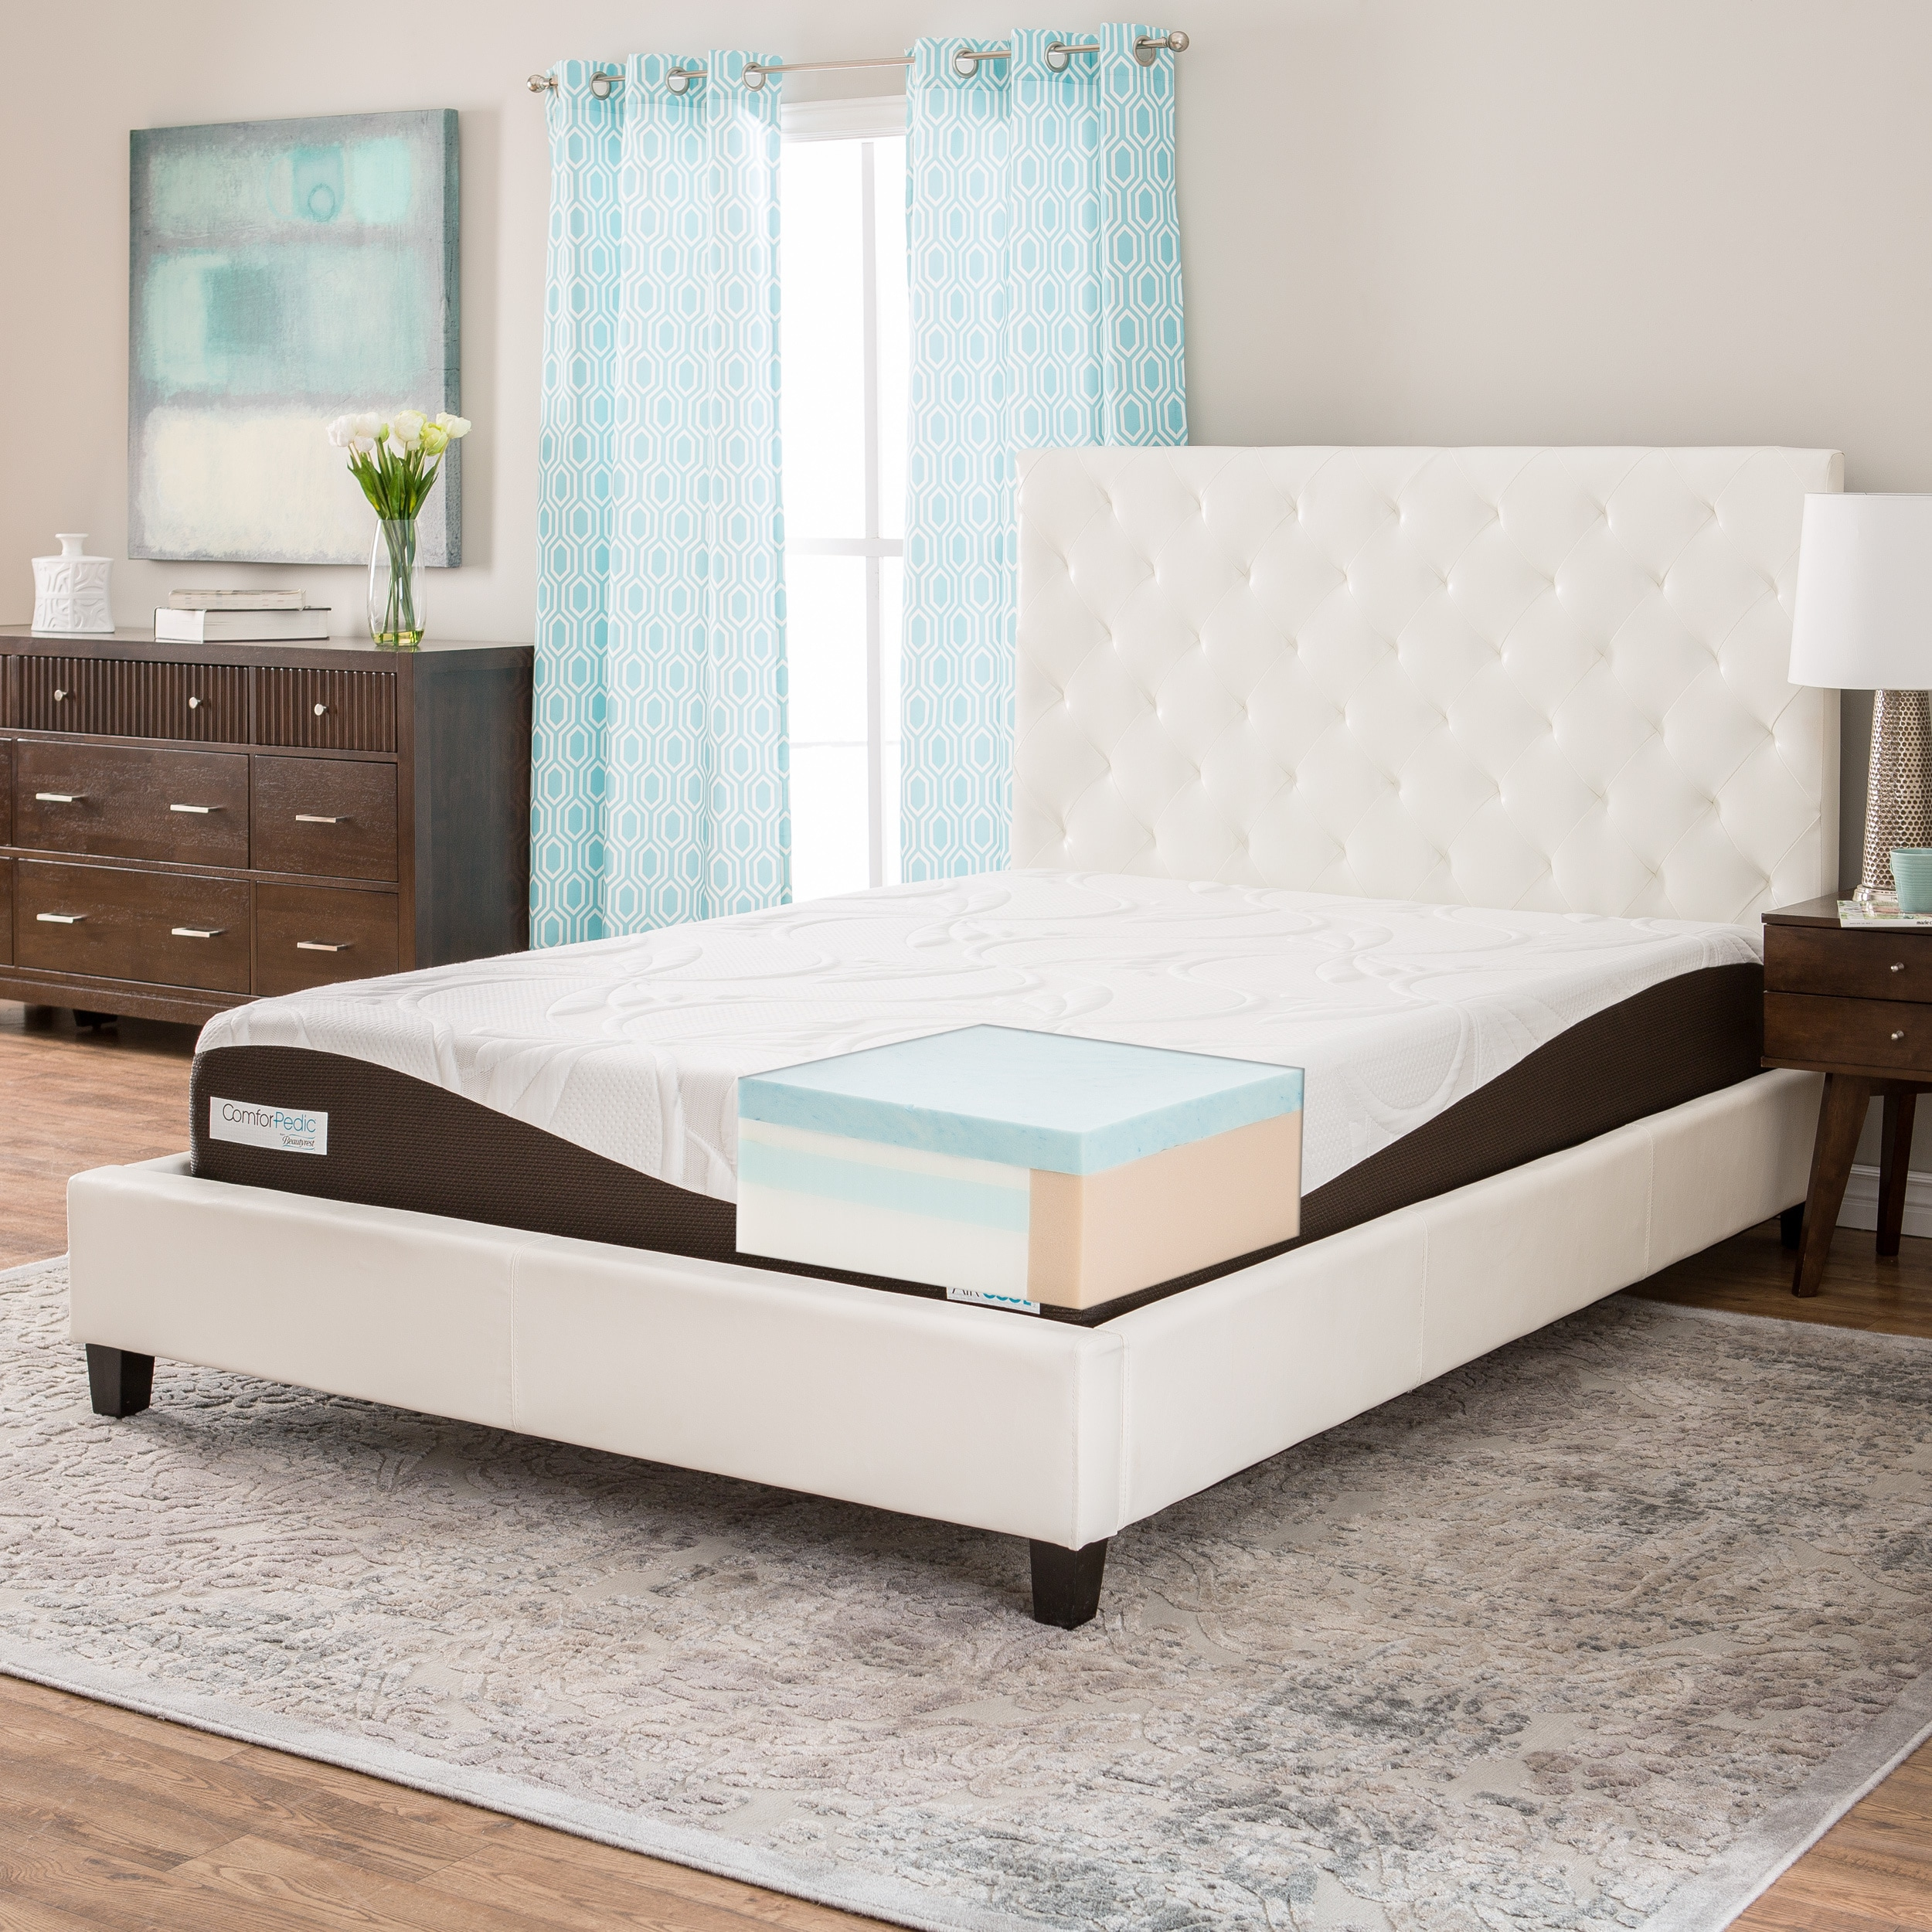 Simmons Beautyrest ComforPedic from Beautyrest 10-inch Queen-size Gel Memory Foam Mattress by Overstock